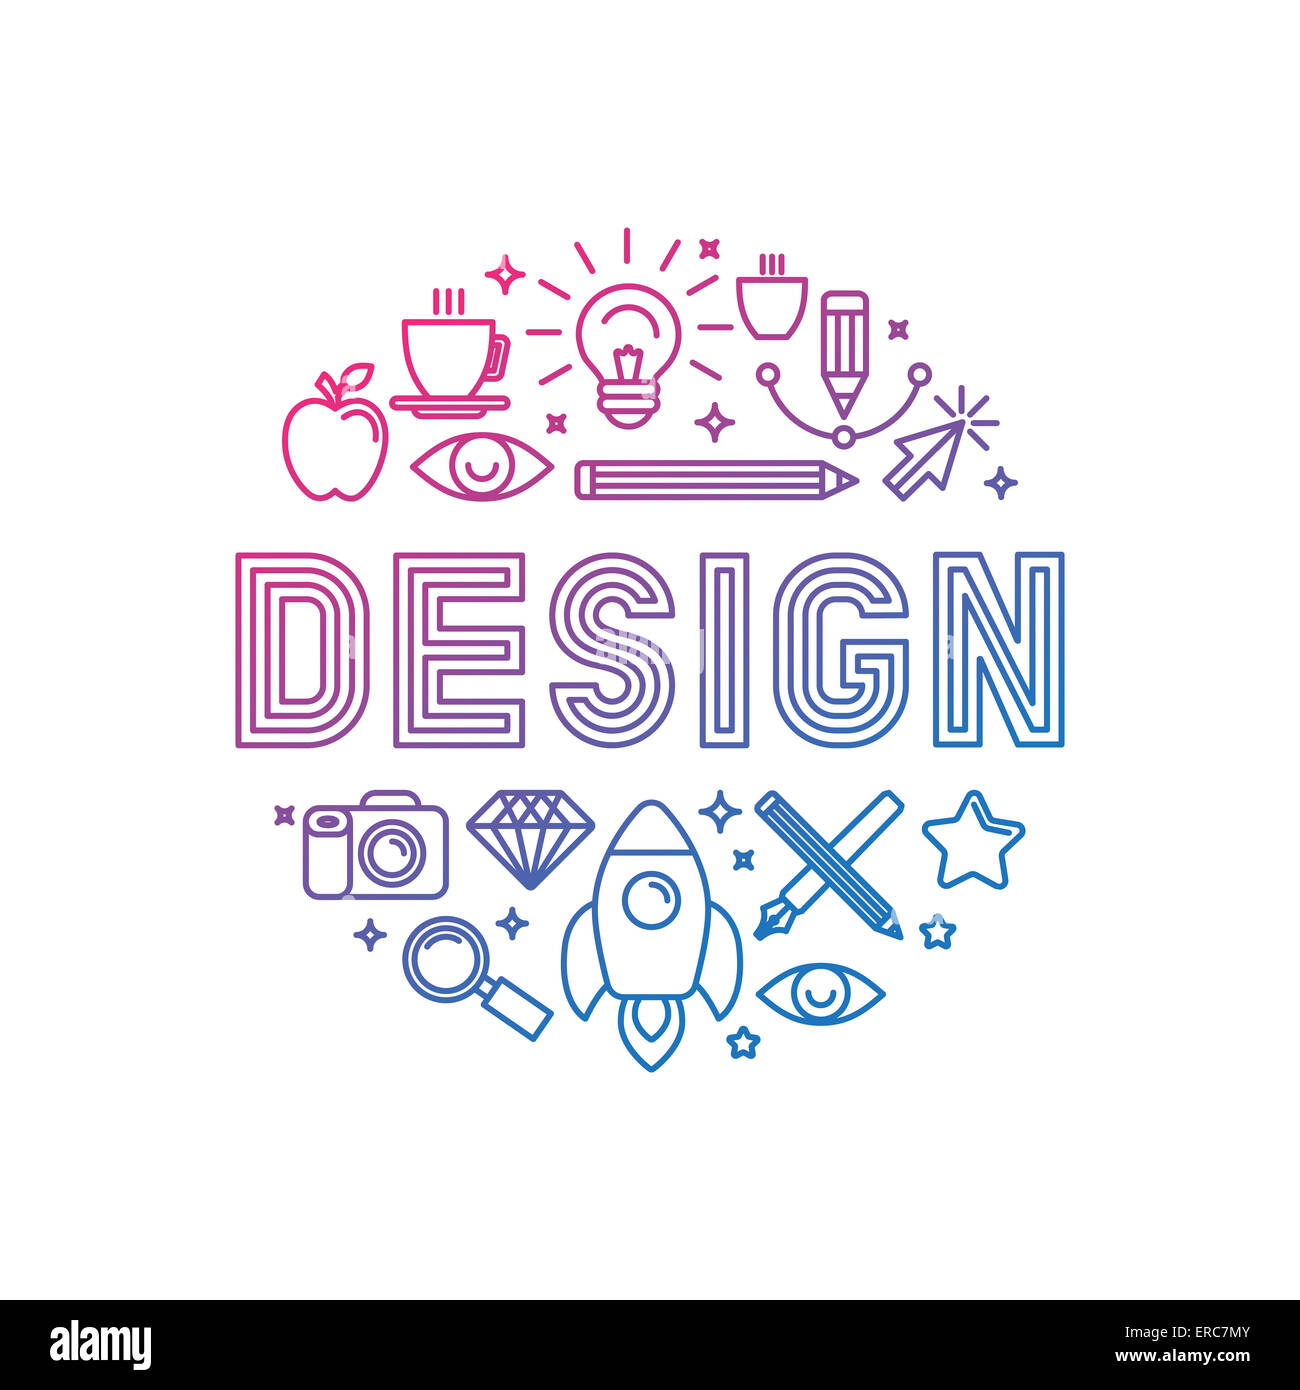 Linear logo design concept - illustration with icons and signs related to graphic design and creative process - Stock Image